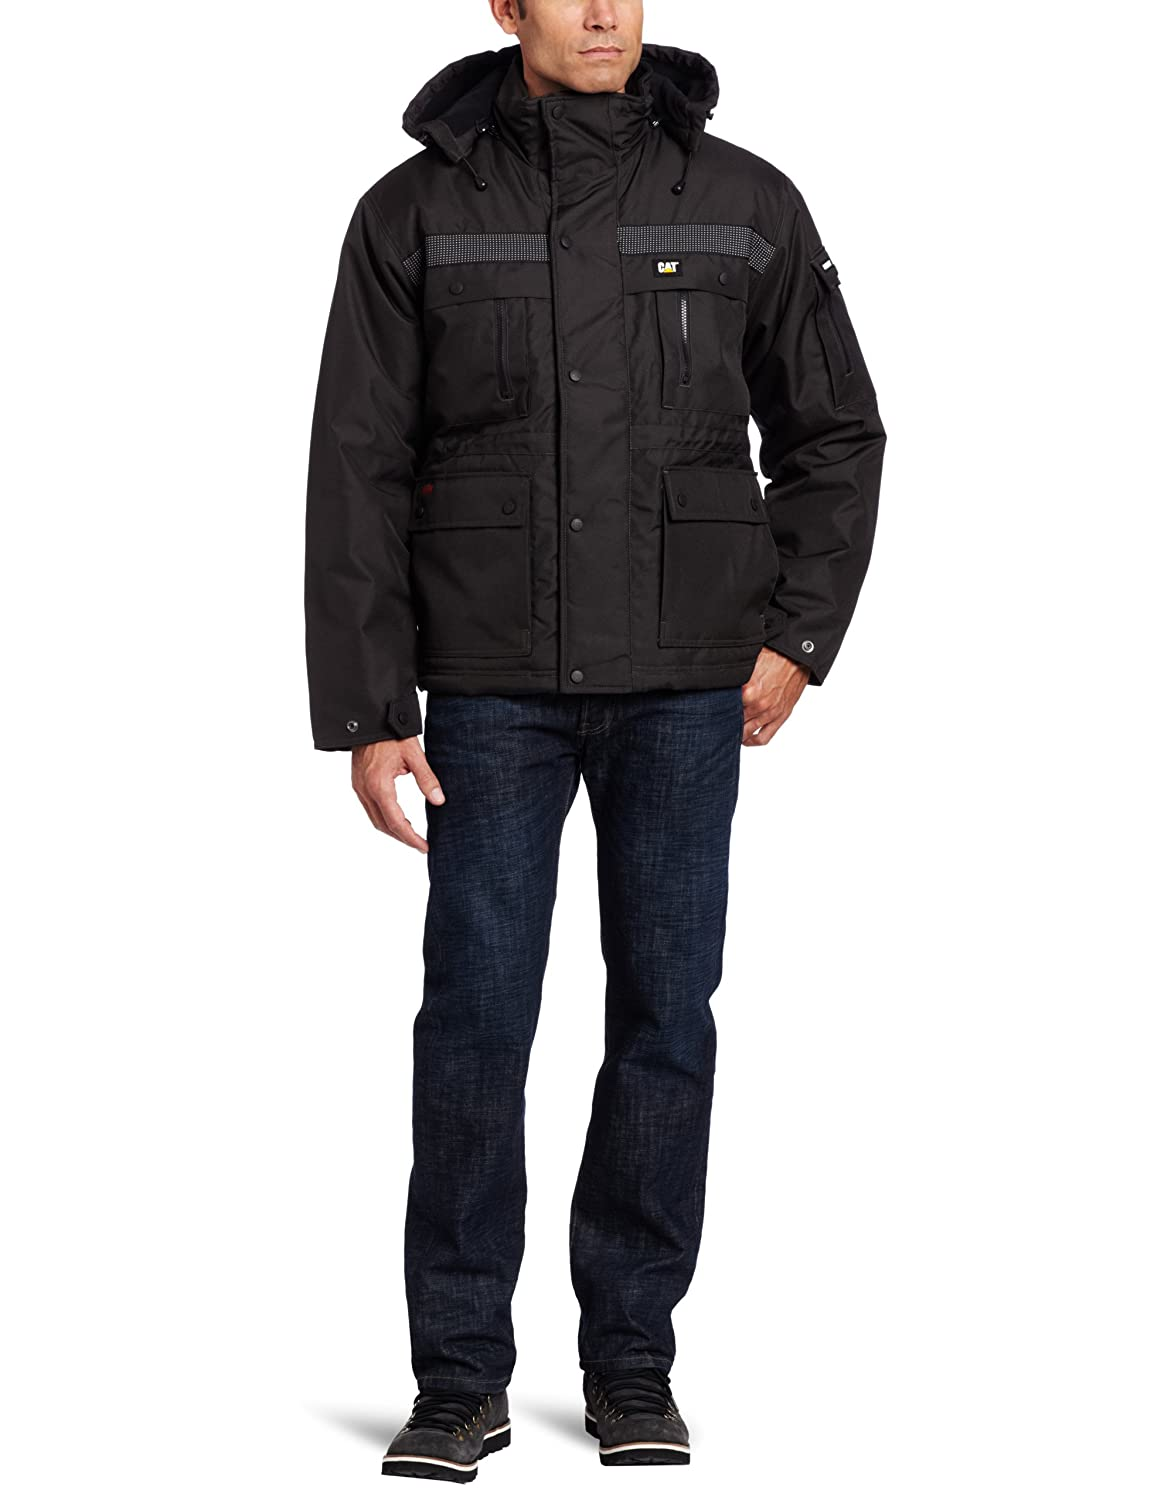 Caterpillar Mens Heavy Insulated Parka CAT Men/'s Sportswear /& Accessories W11432